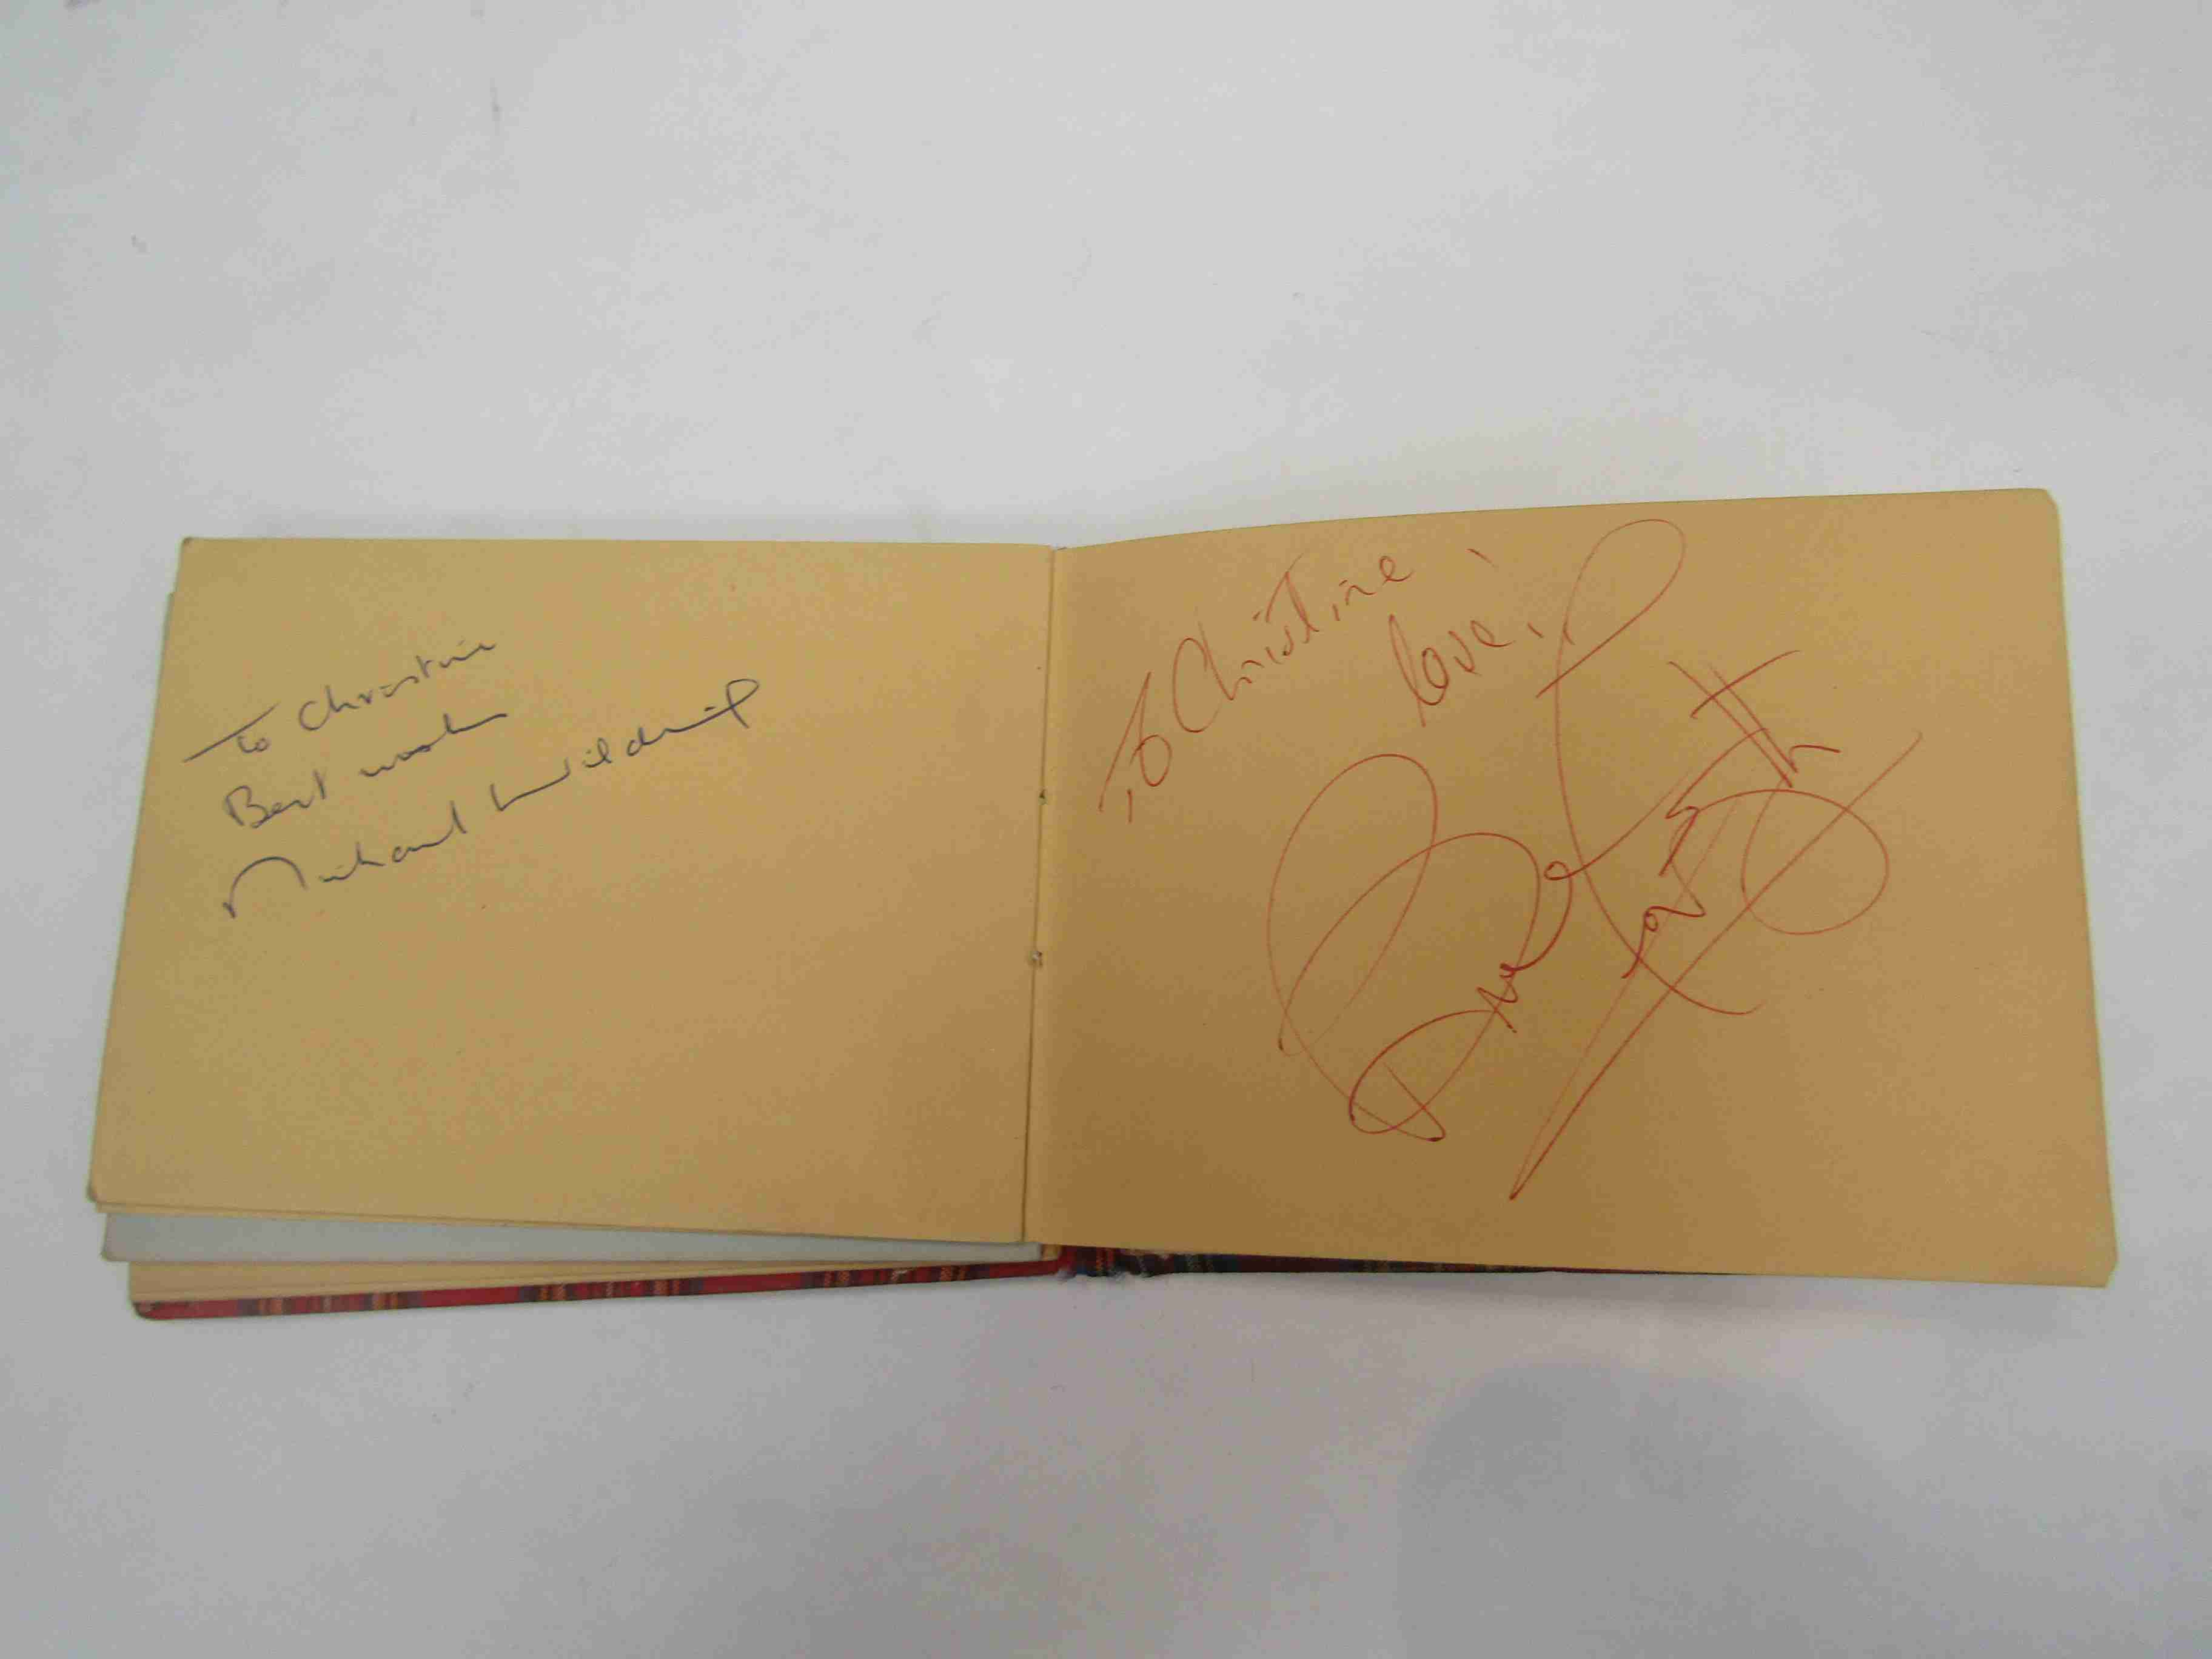 Two 1950s/60s autograph books containing autographs by Benny Hill, Honor Blackman, Barbara Shelley, - Image 33 of 34